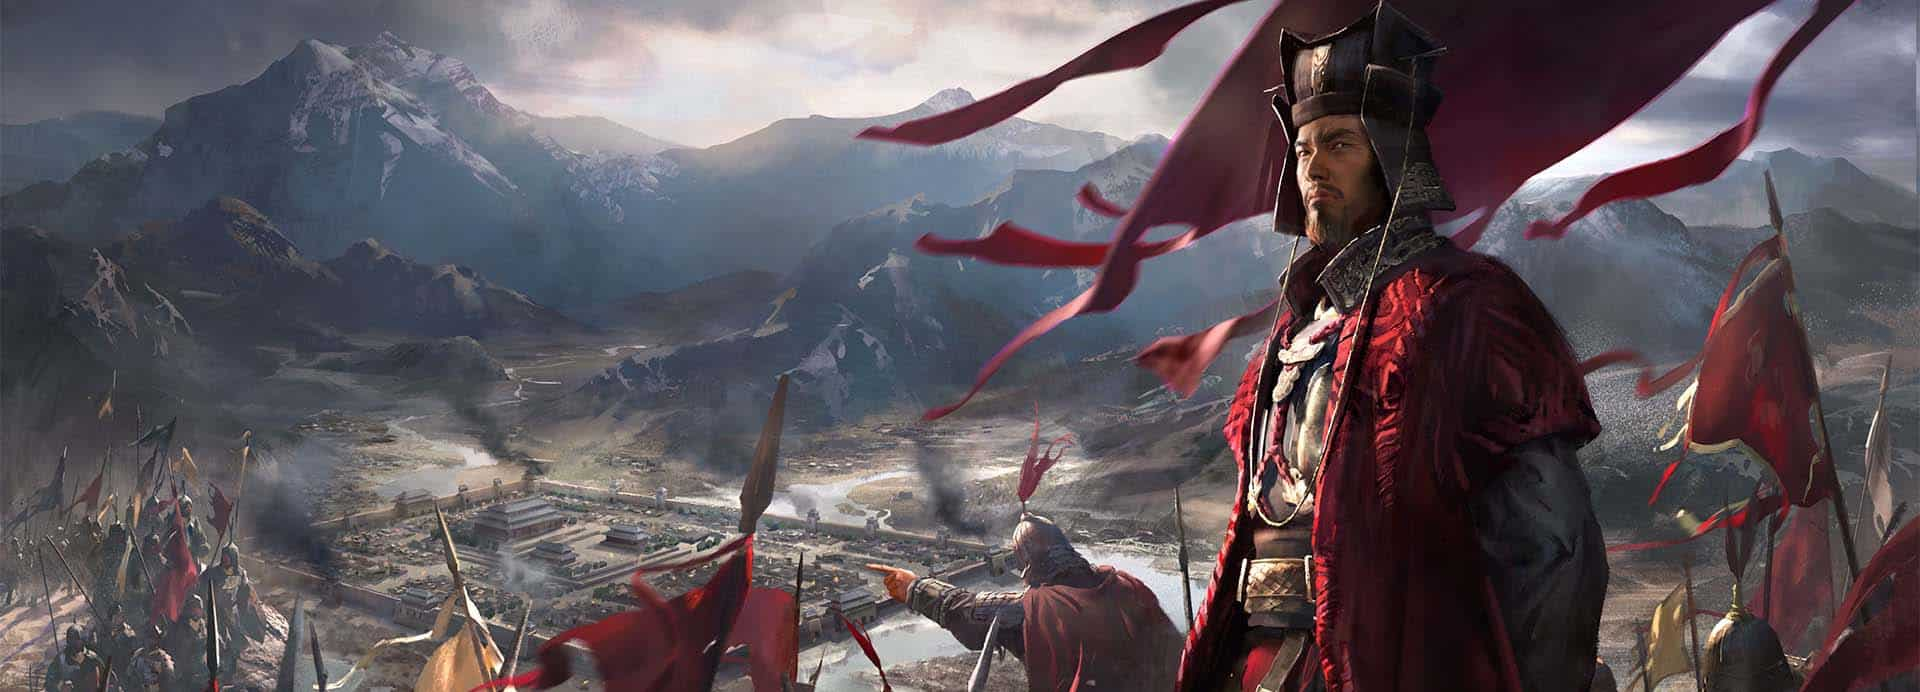 Total War: Three Kingdoms Release Date, News, Trailer, and Rumors